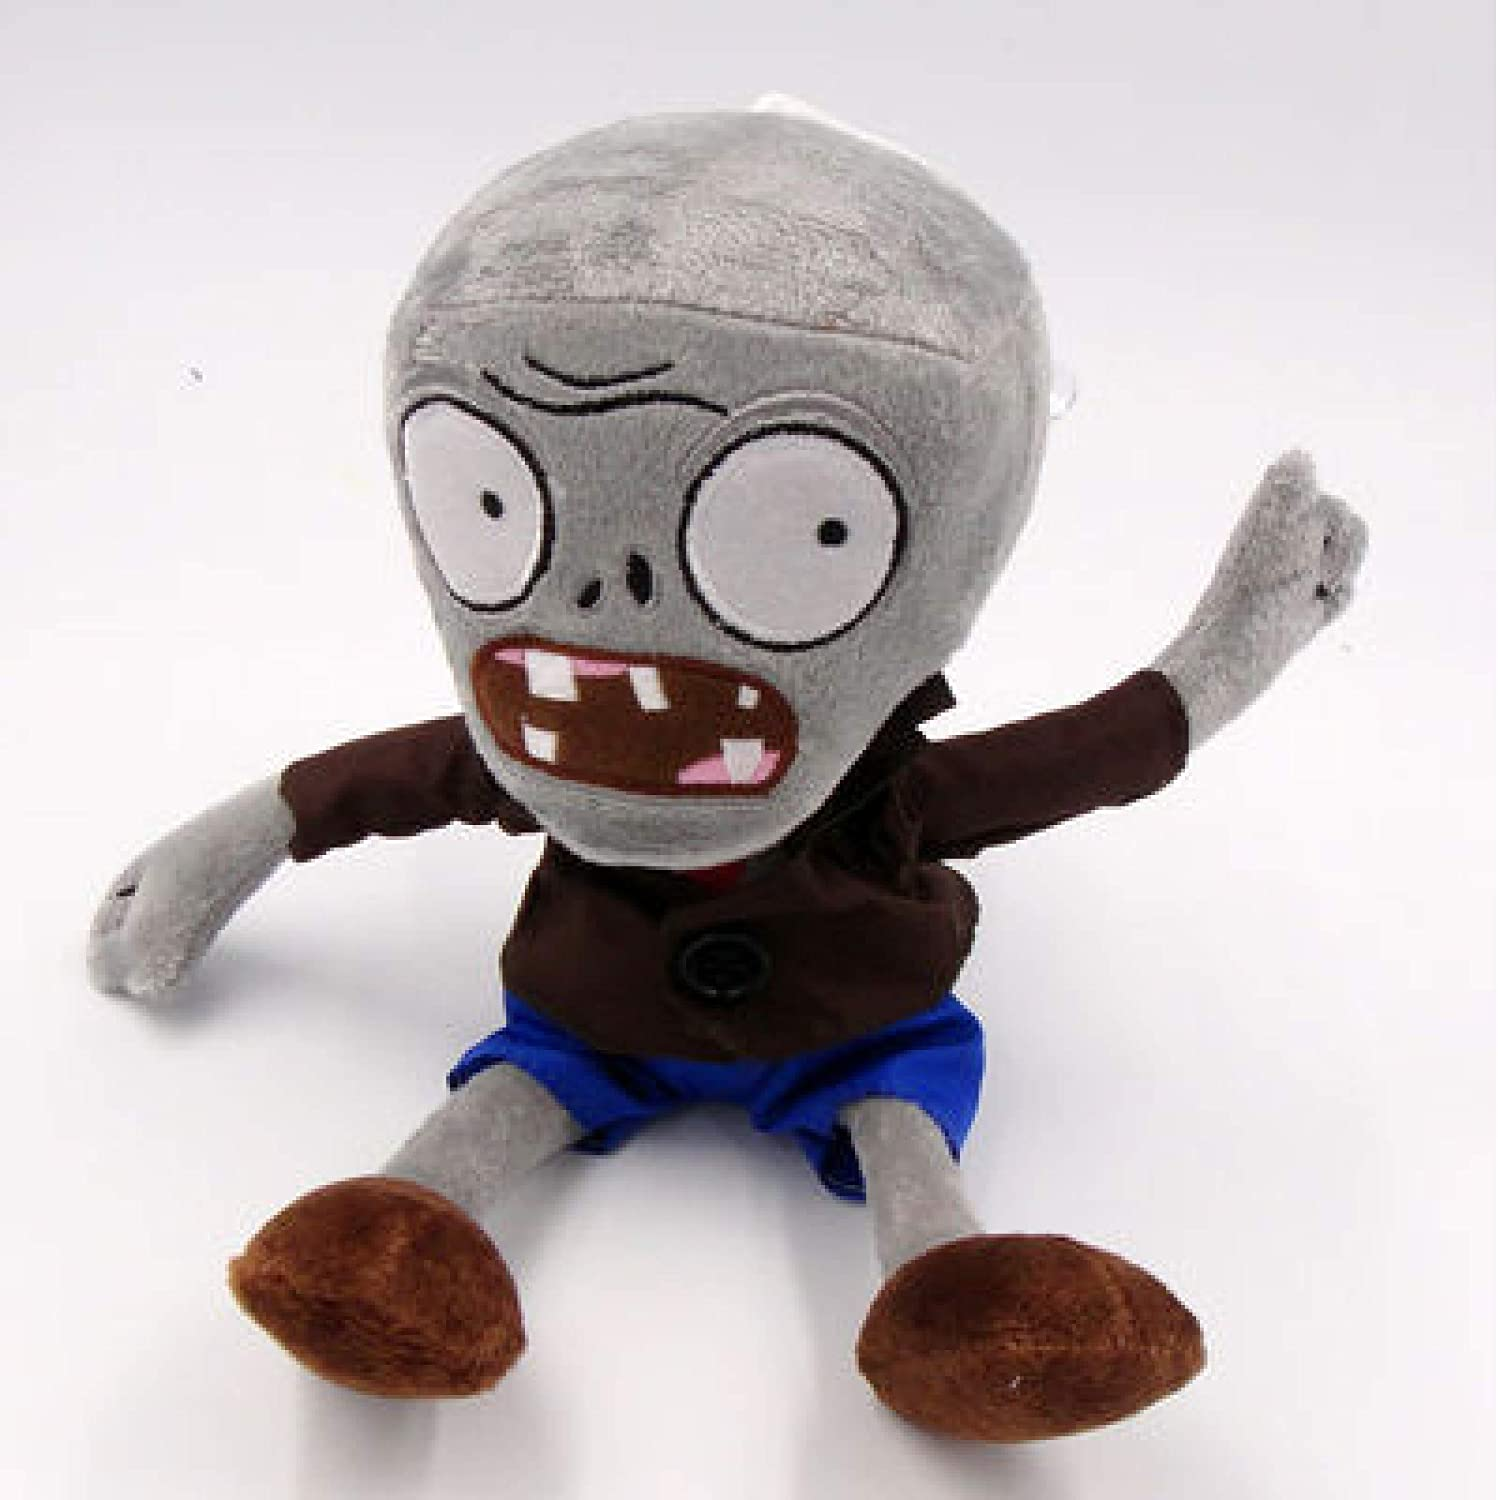 ZJSXIA Plant Vs Zombies Halloween Grey Plush Max 90% OFF 30Cm Zombie Super beauty product restock quality top Do Toys